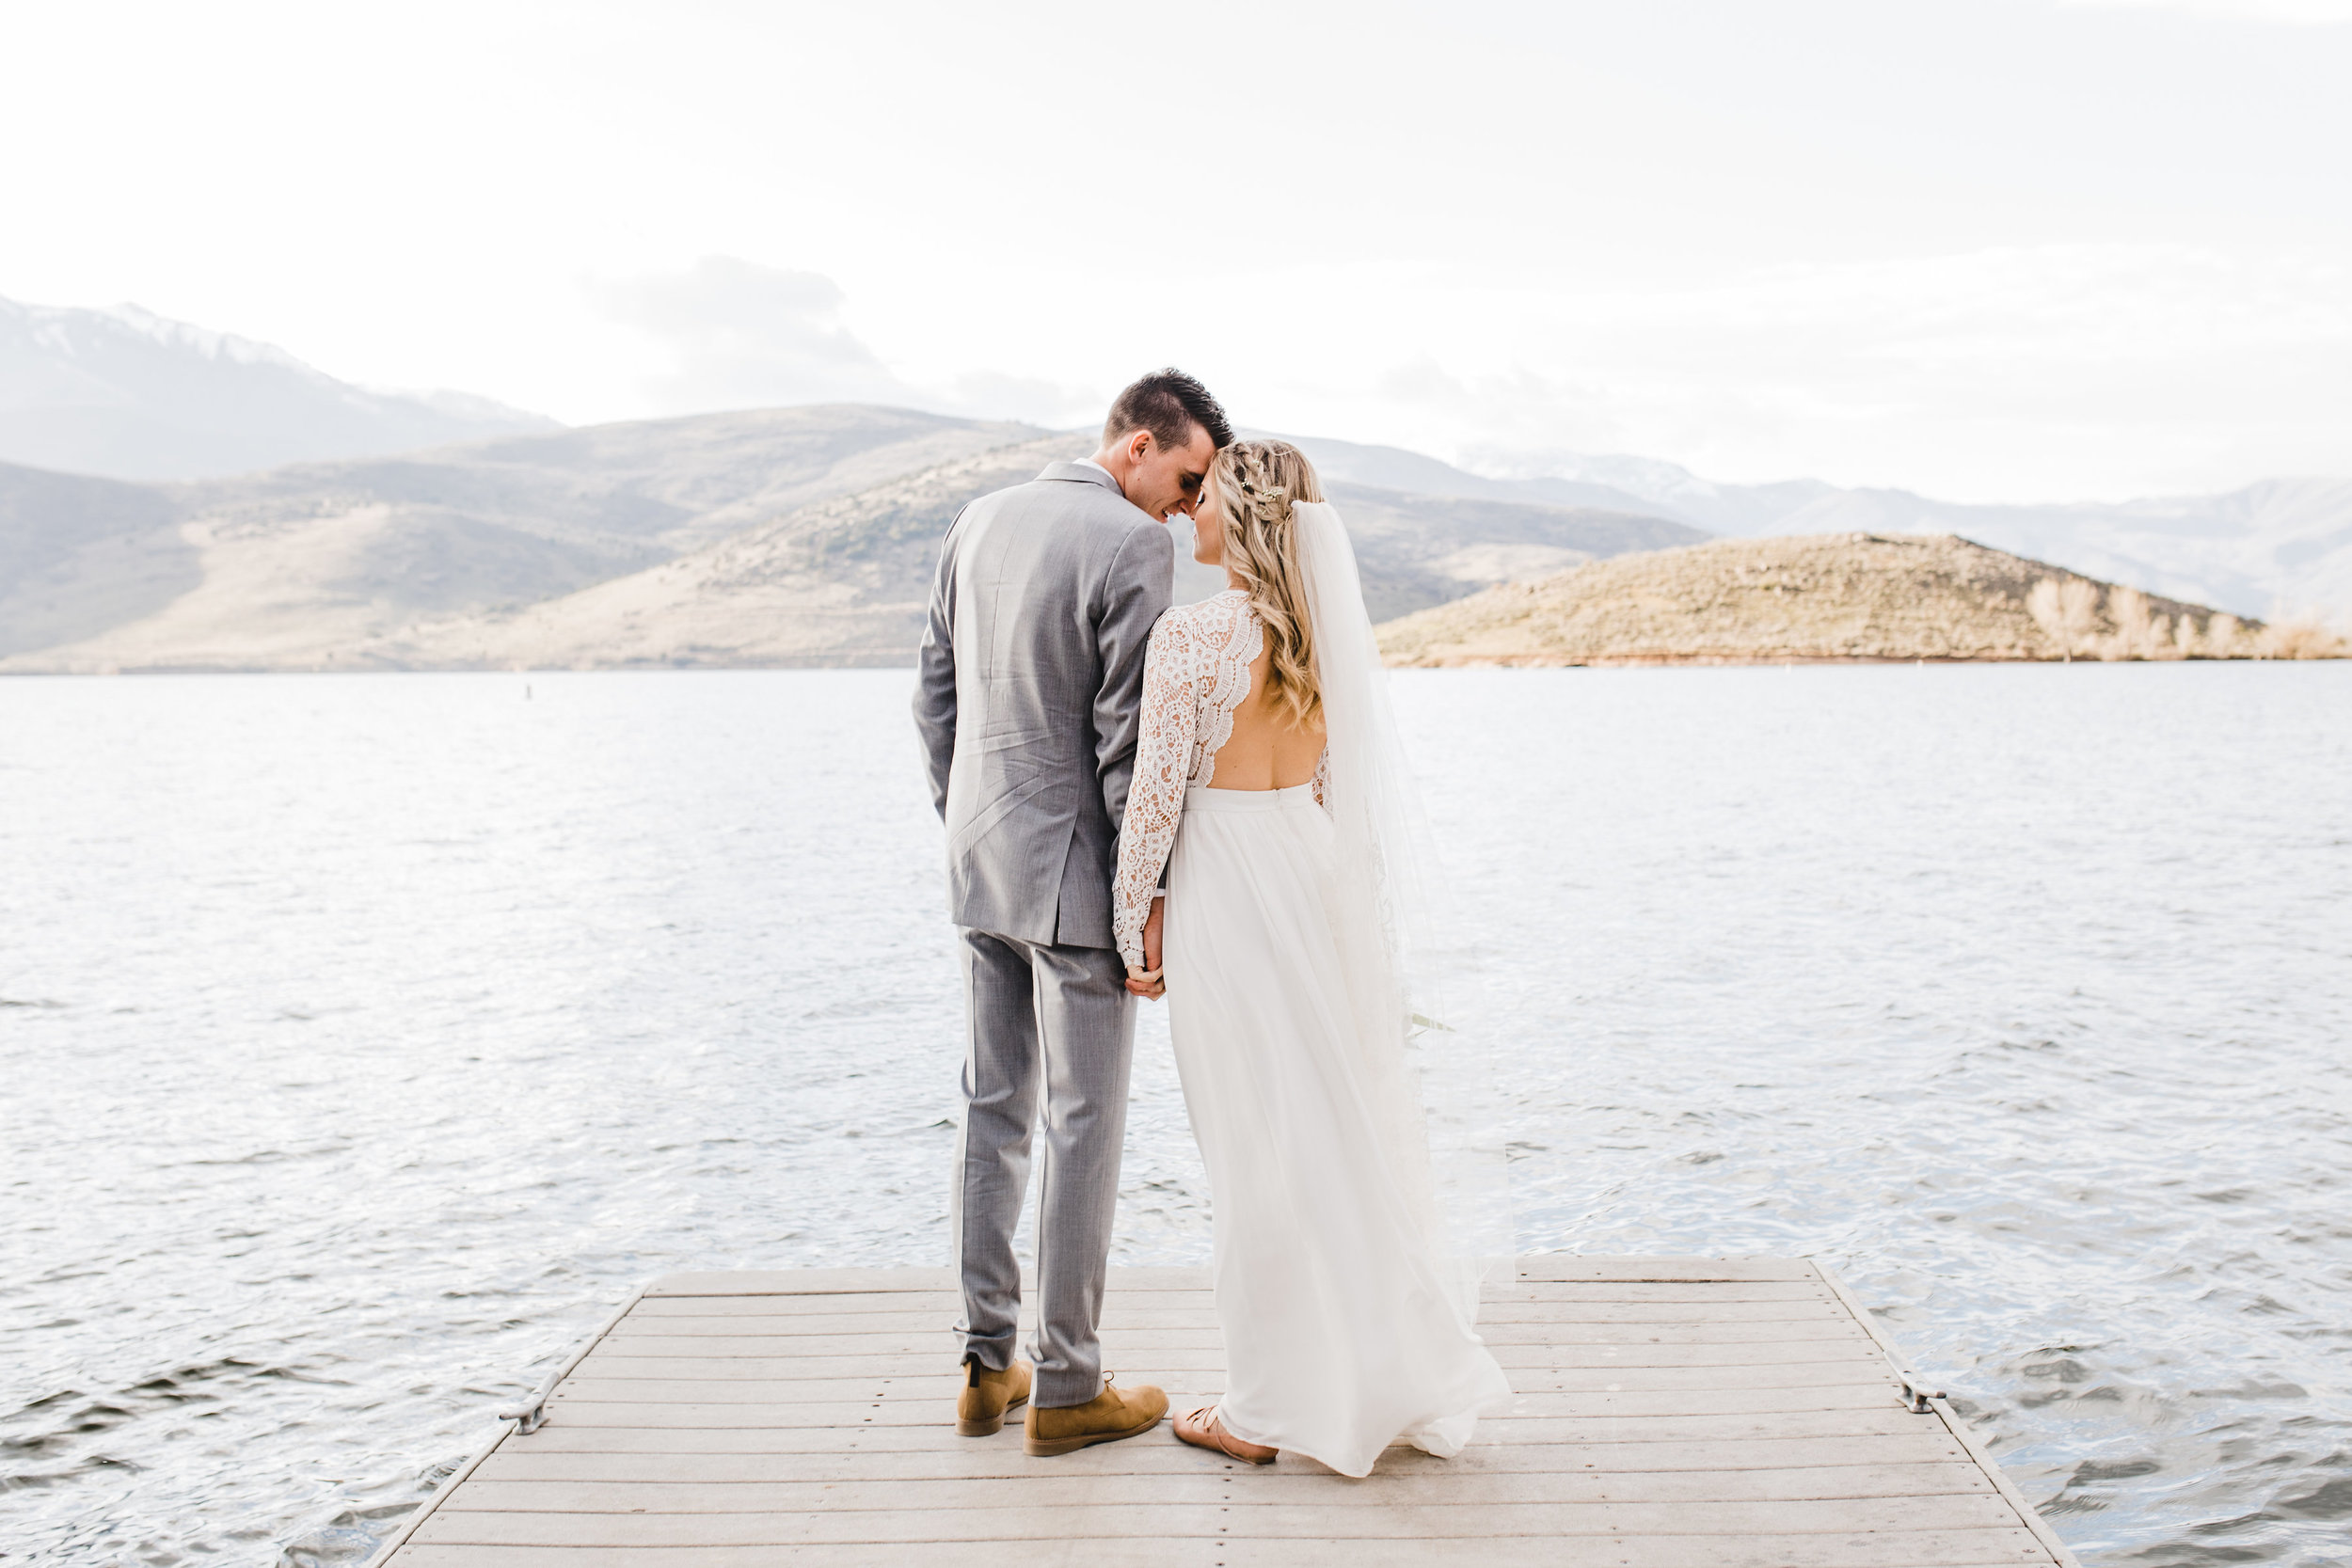 professional wedding photographer in cache valley utah lake bridals mountains holding hands